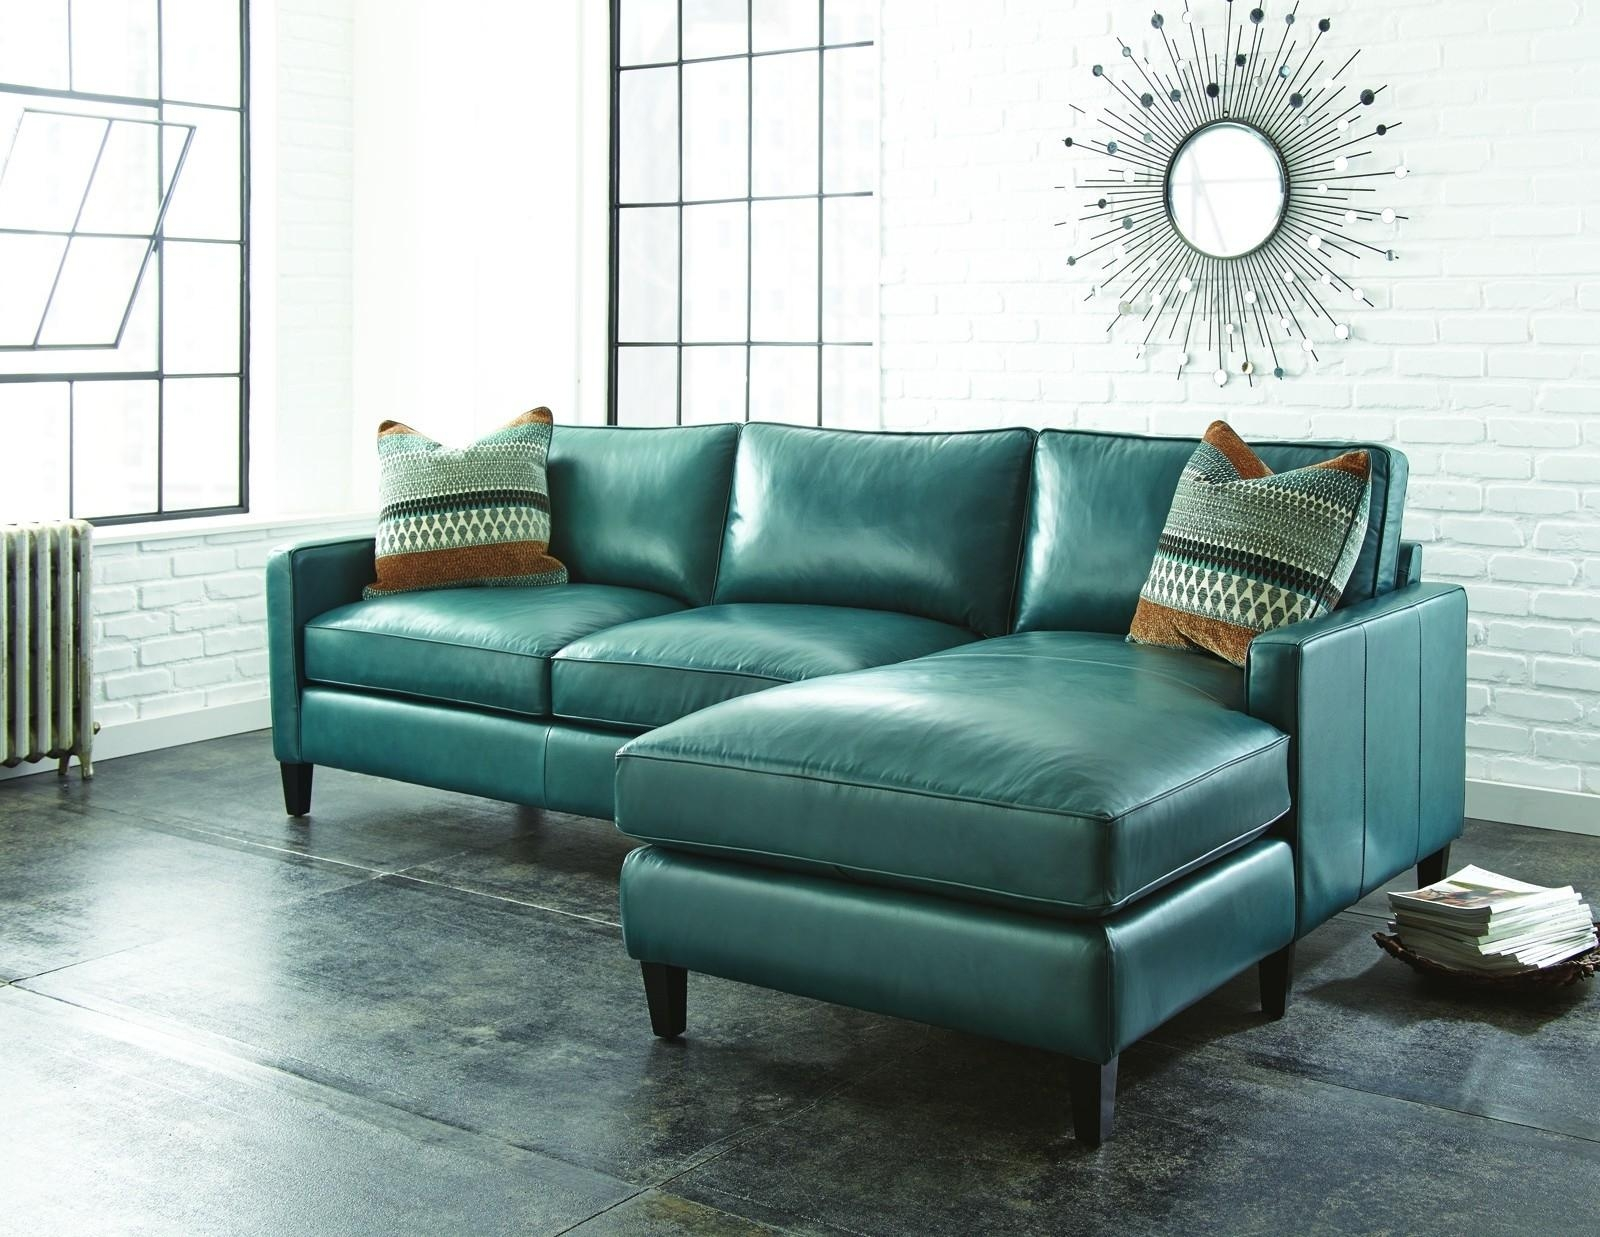 Furniture: Mesmerizing Costco Sectionals Sofa For Cozy Living Room Regarding Sofas And Sectionals (Image 11 of 20)